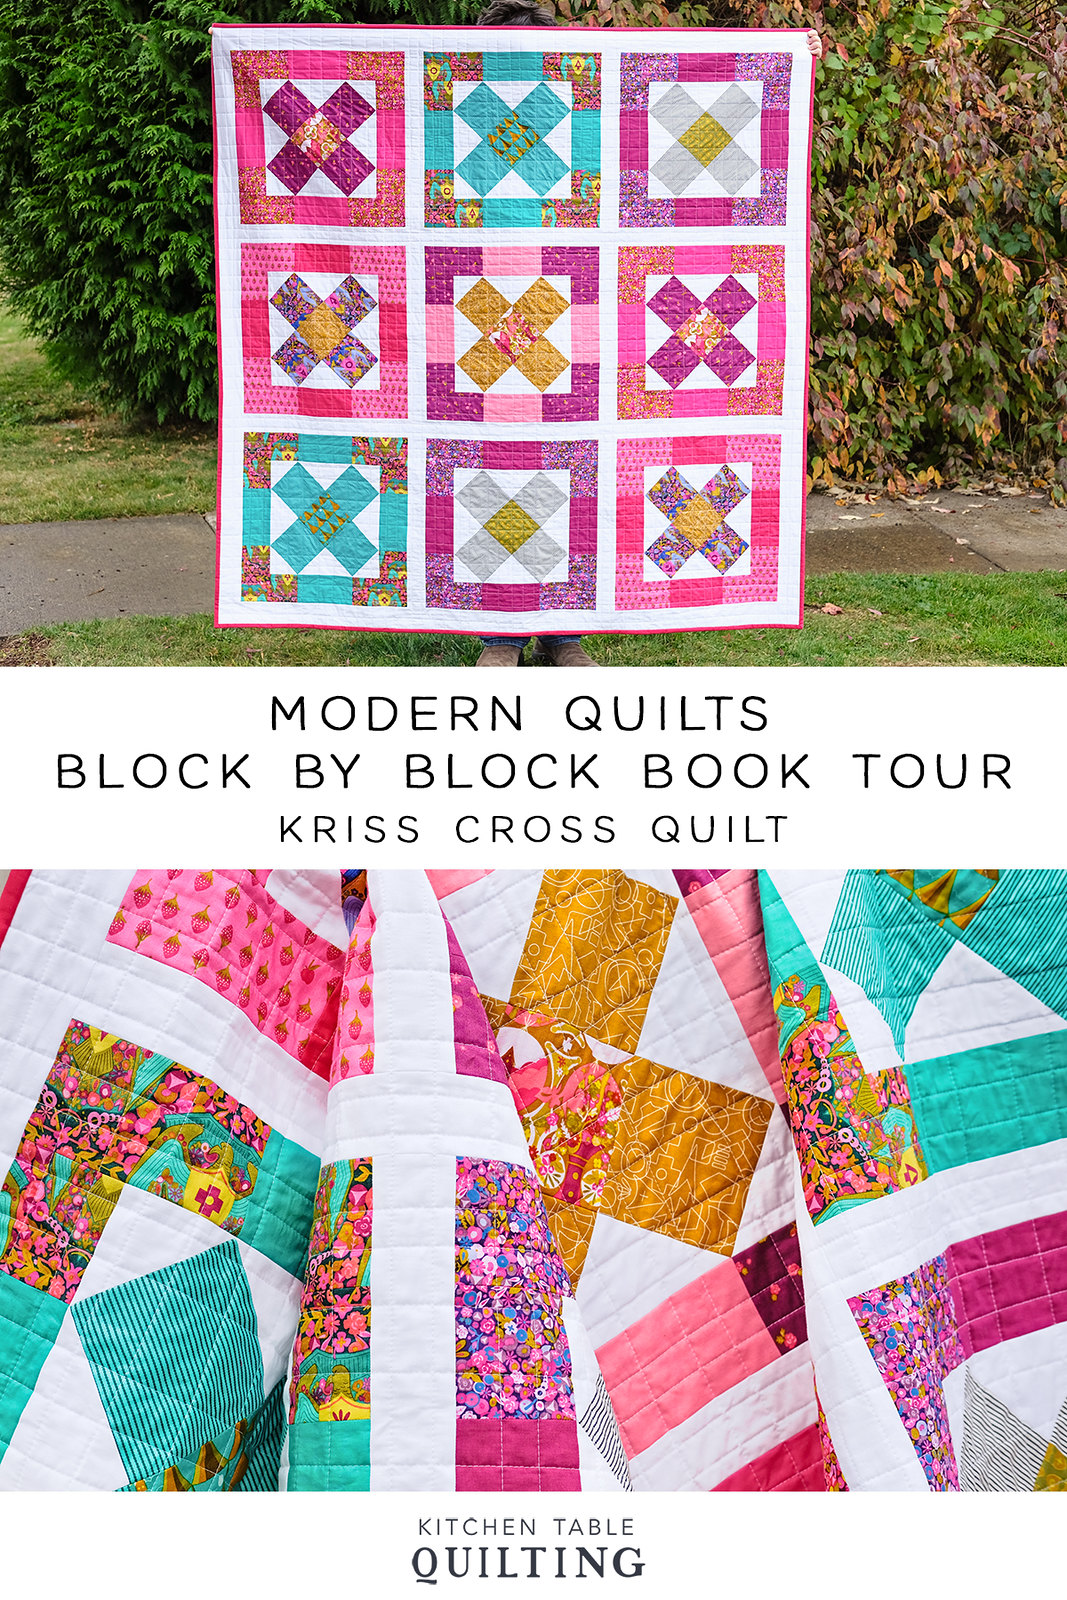 Kriss Cross Quilt - Modern Quilts Block by Block Book Tour